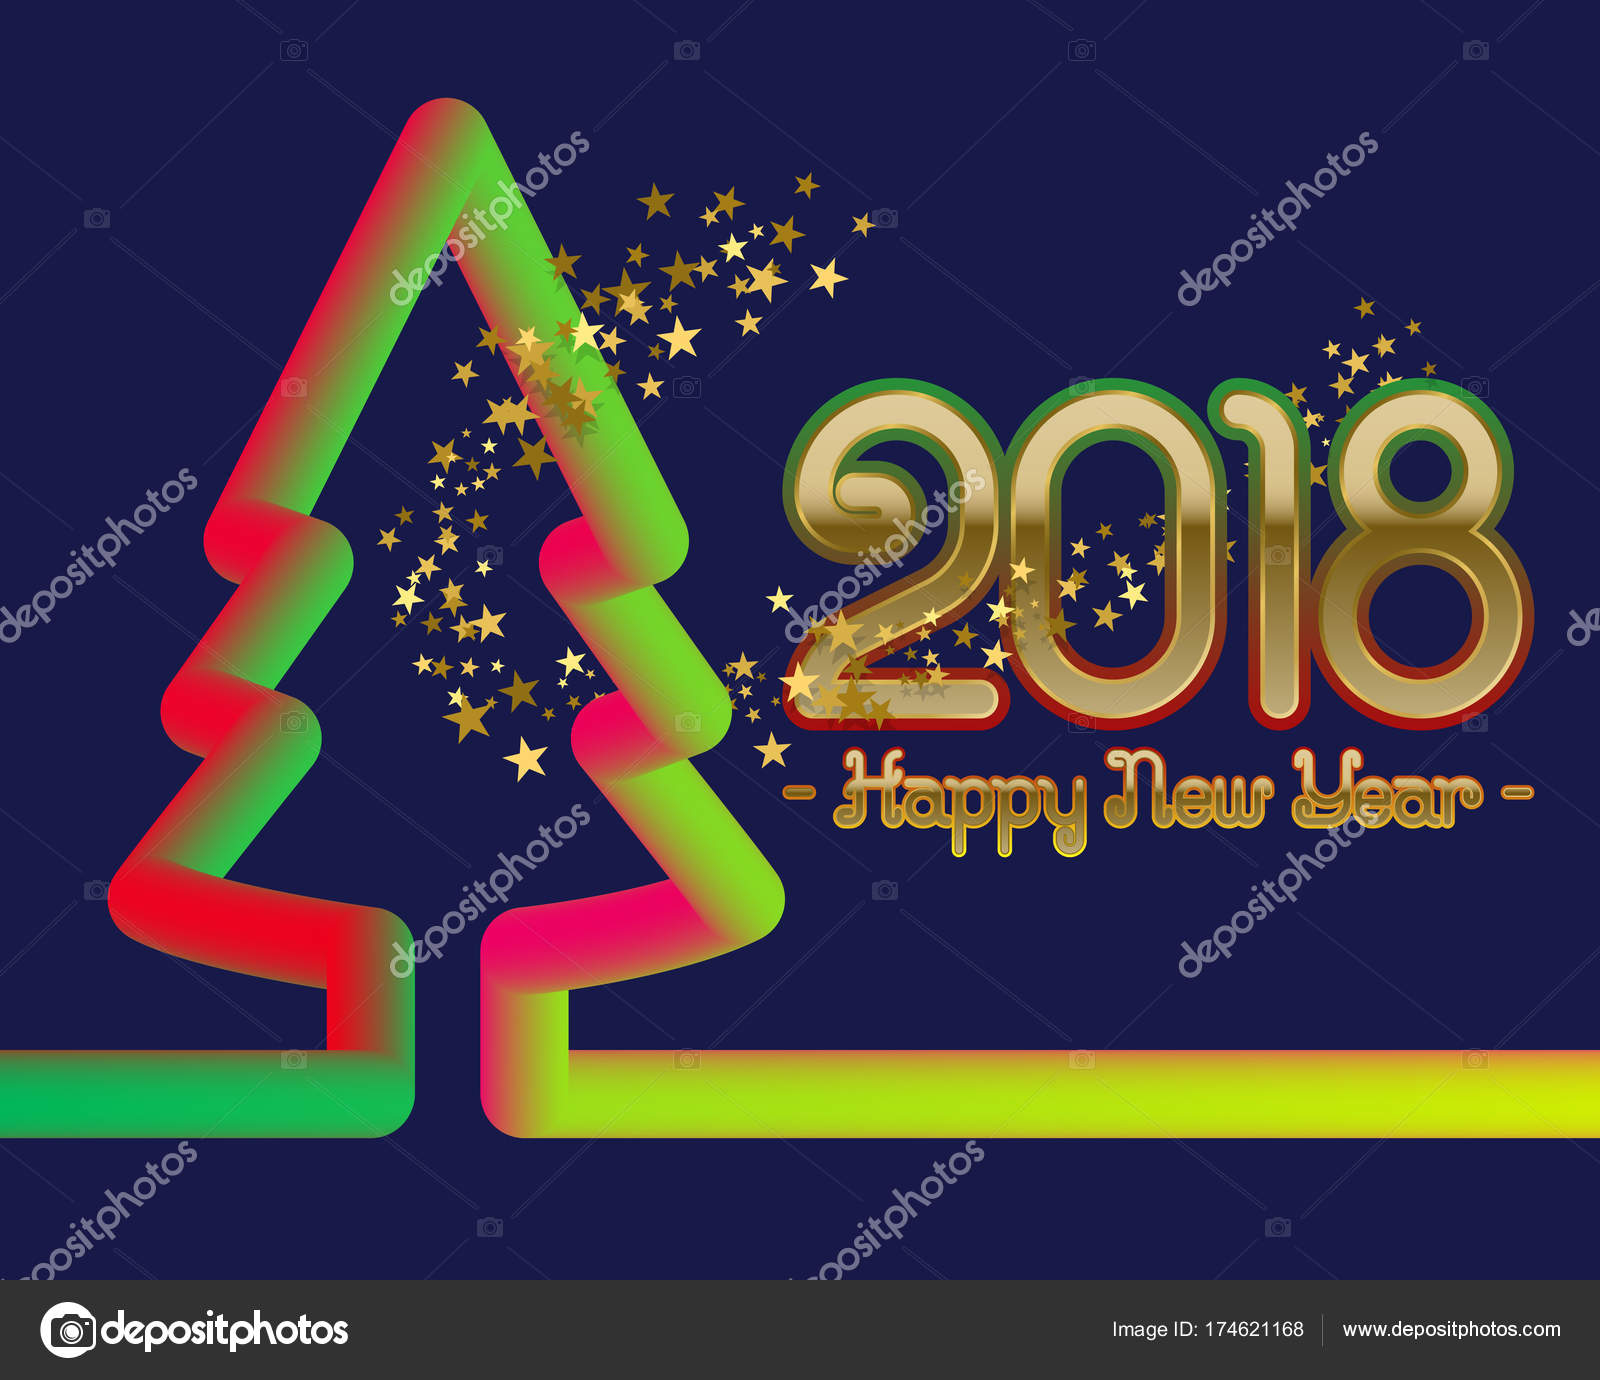 2018 Happy New Year Greeting Card Template With Fluid Colors